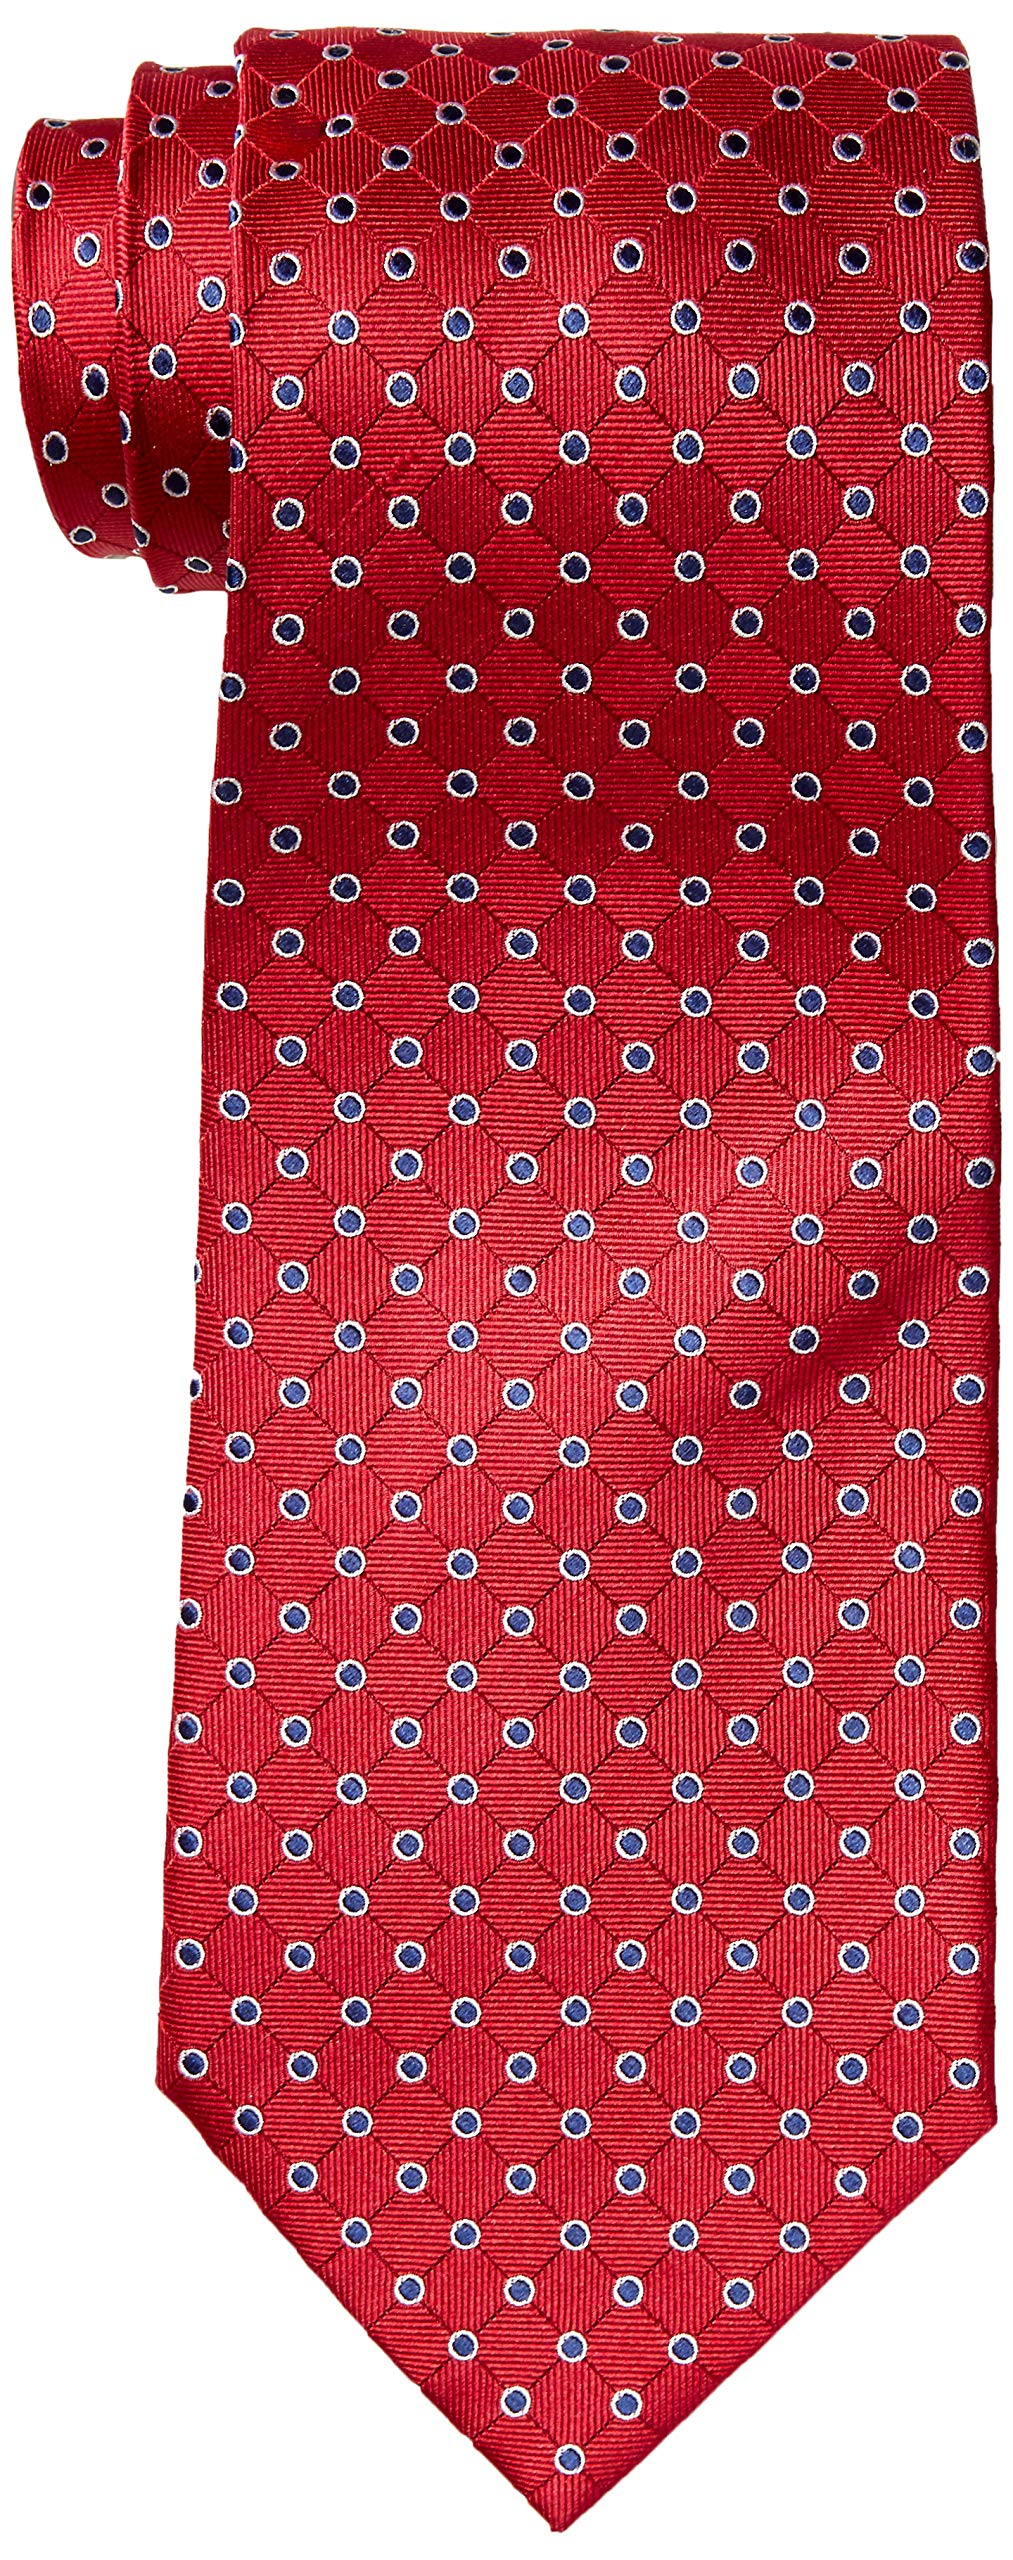 100% Silk Extra Long Red Necktie with Polka Dots (63 Inches Long, 3.75 Inches Wide)